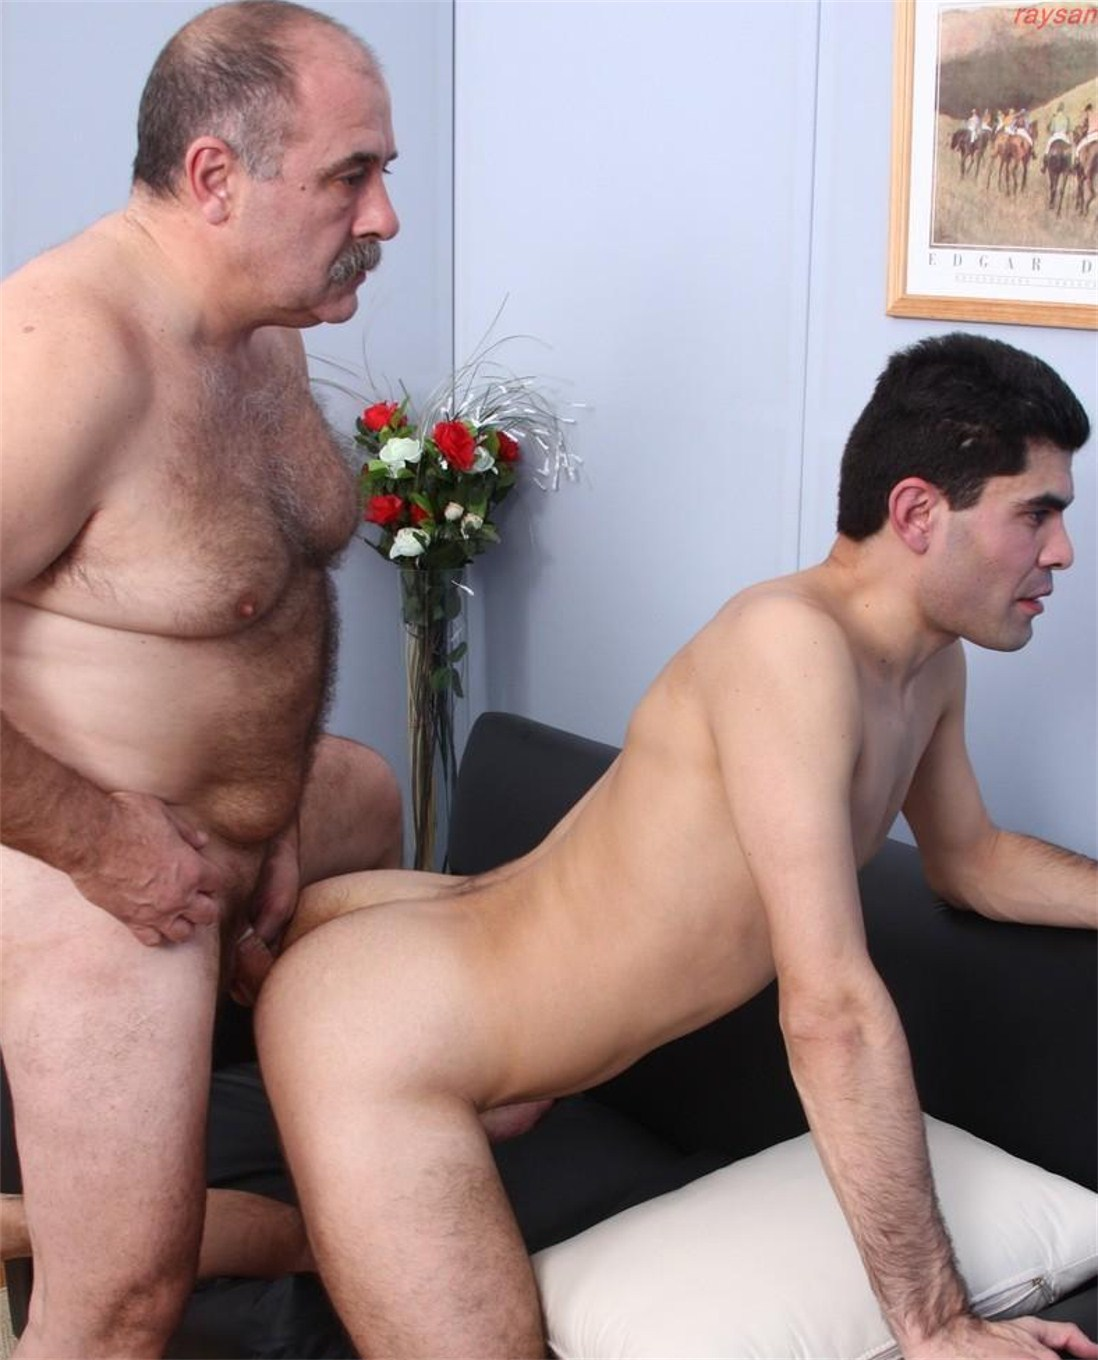 Daddy gay photo porno